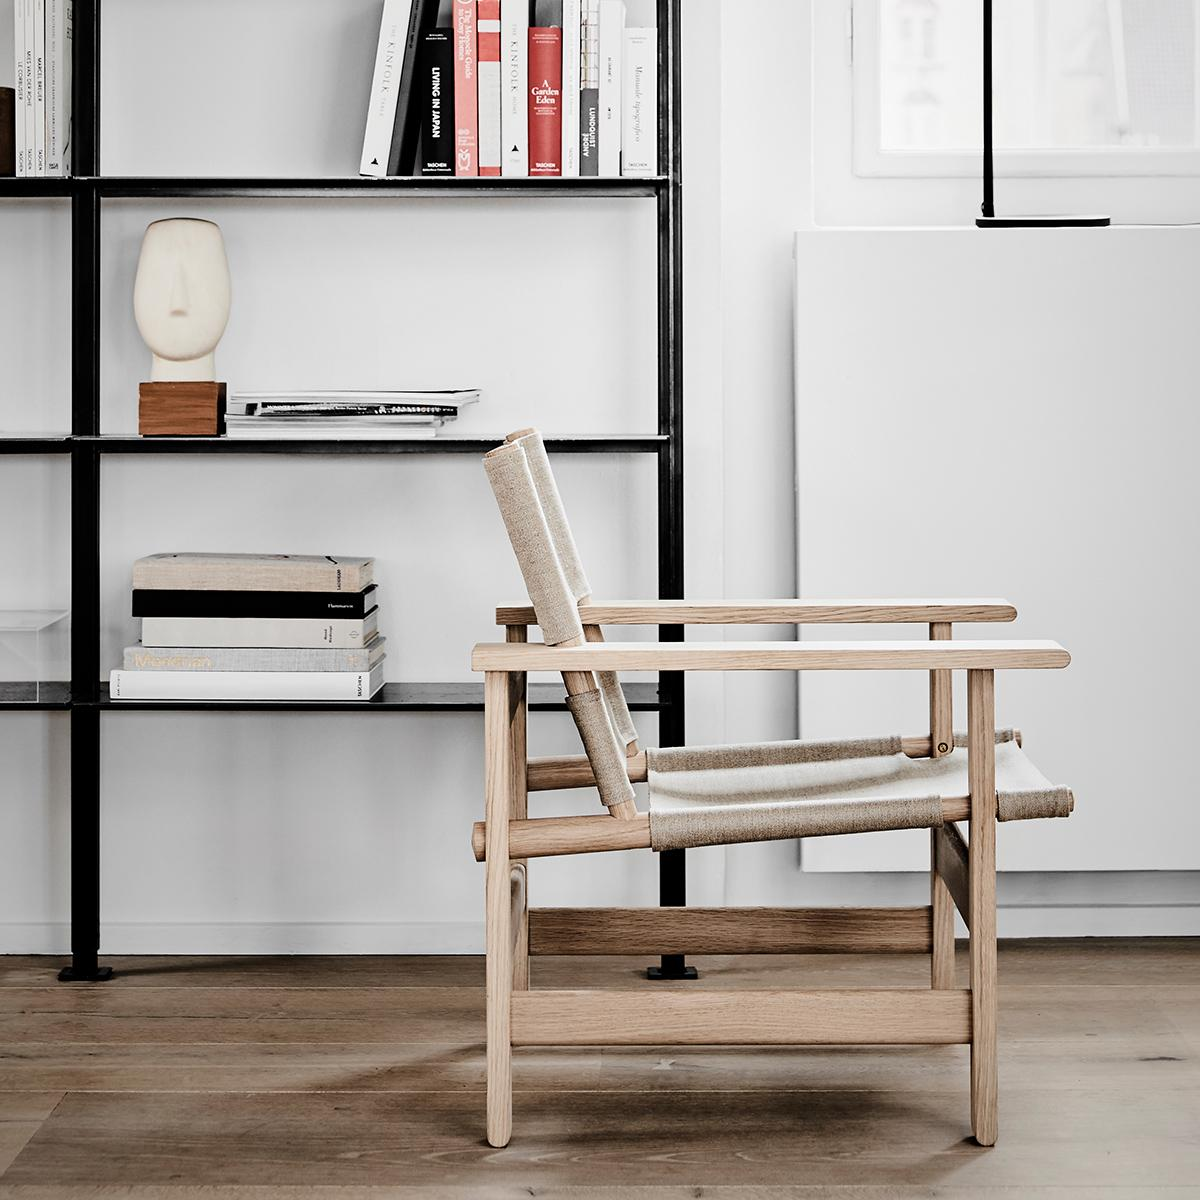 fredericia-the-canvas-chair-natural-canvas-soaped-oak-insitu-4-1200